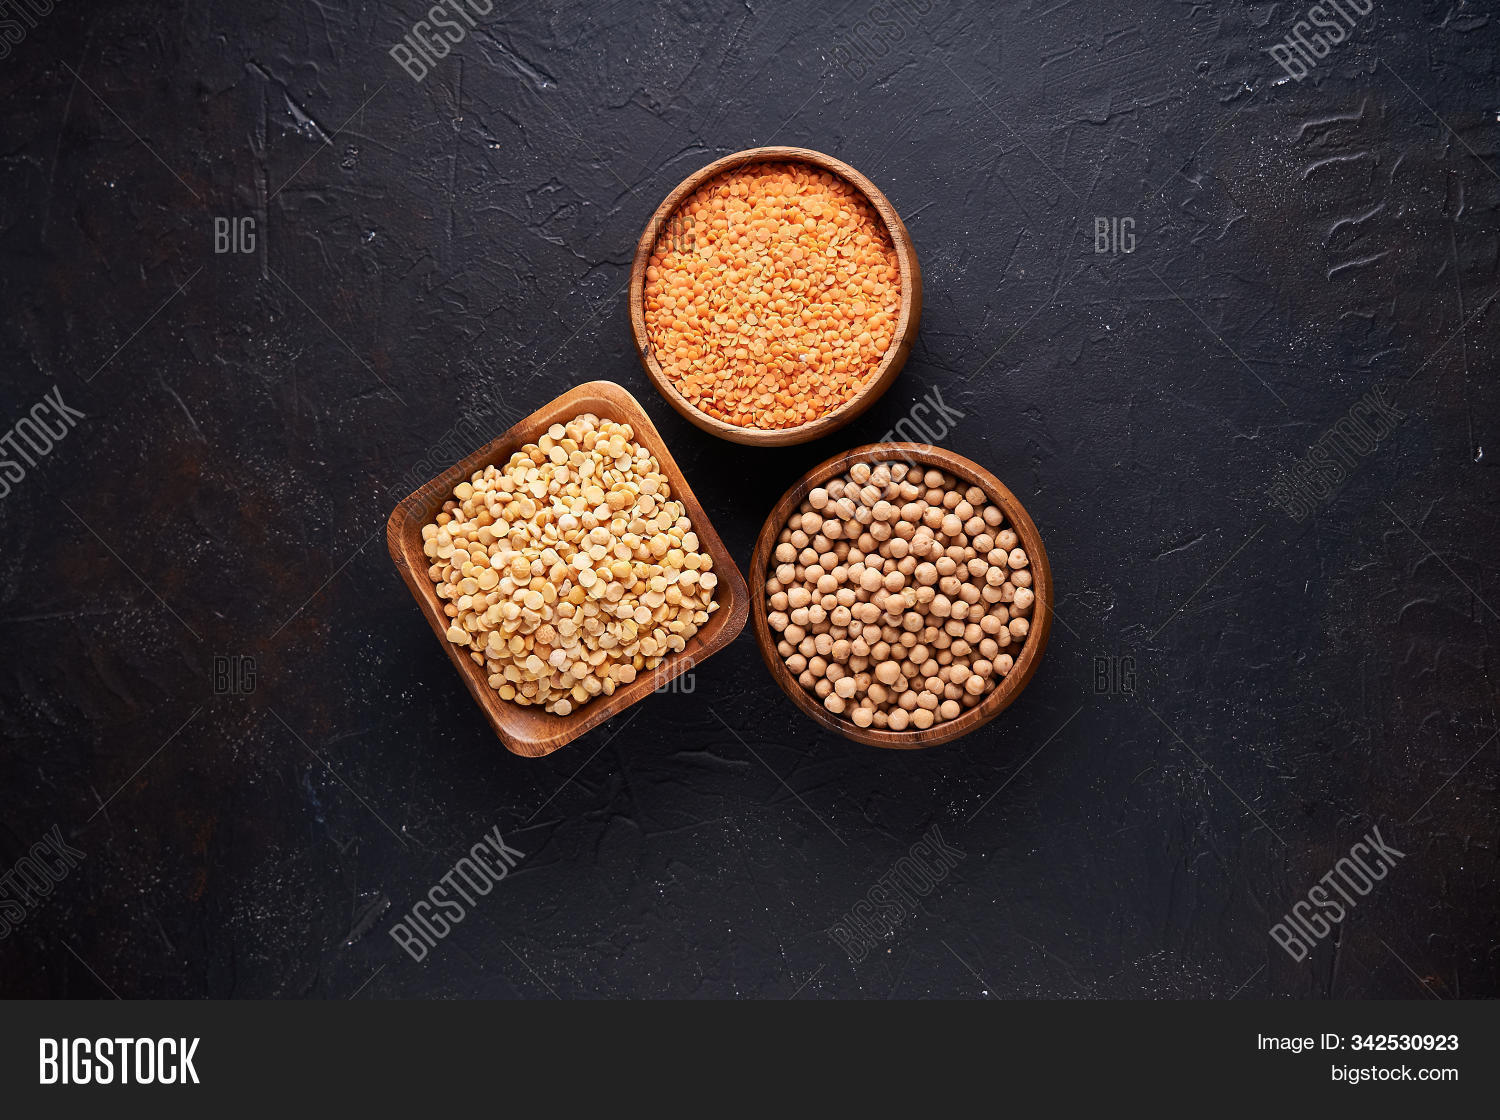 Assortment of cereals, legumes, cereals, grains, lentils, chickpeas, peas, beans in wooden bowls on a dark background